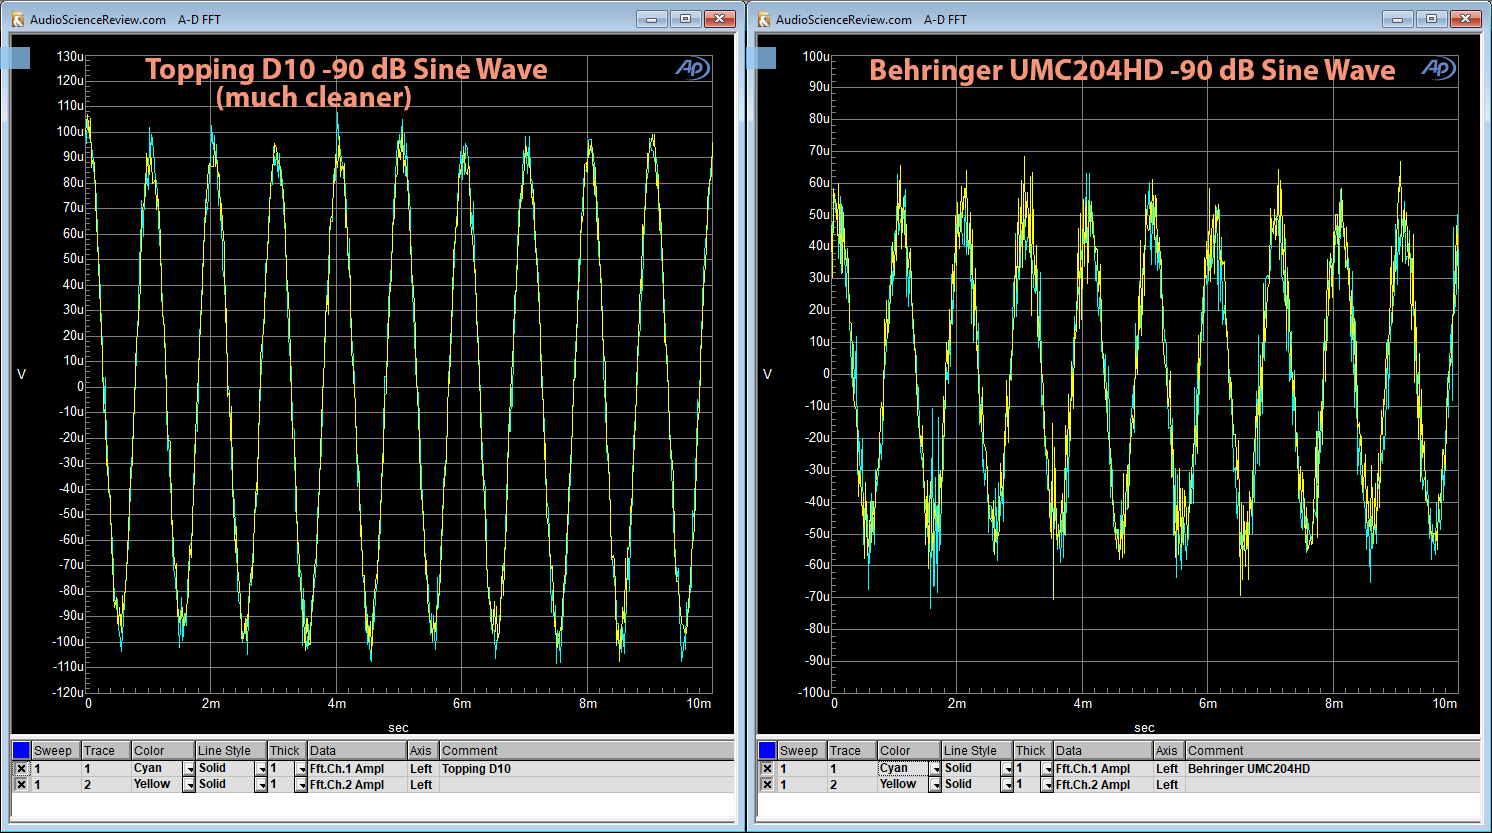 Topping D10 DAC vs Behringer UMC204HD -90 dB Sinewave Measurement.png